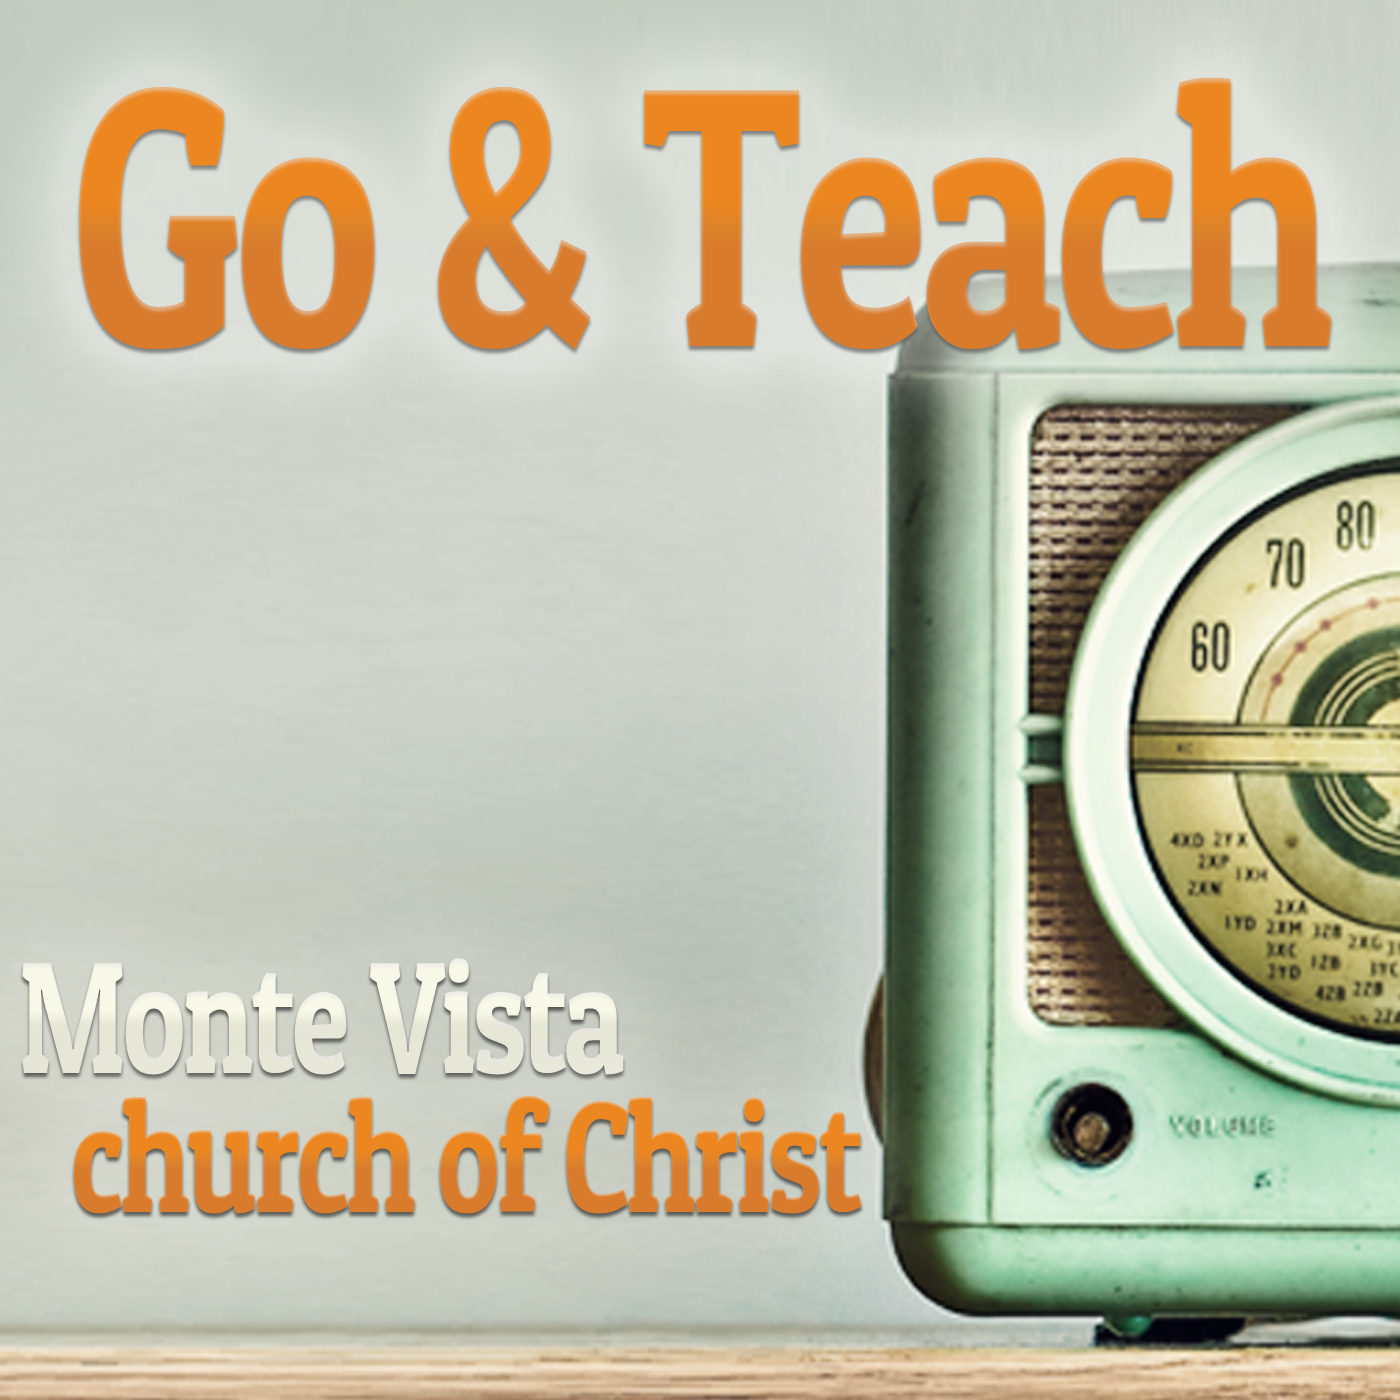 Go and Teach by the Monte Vista church of Christ